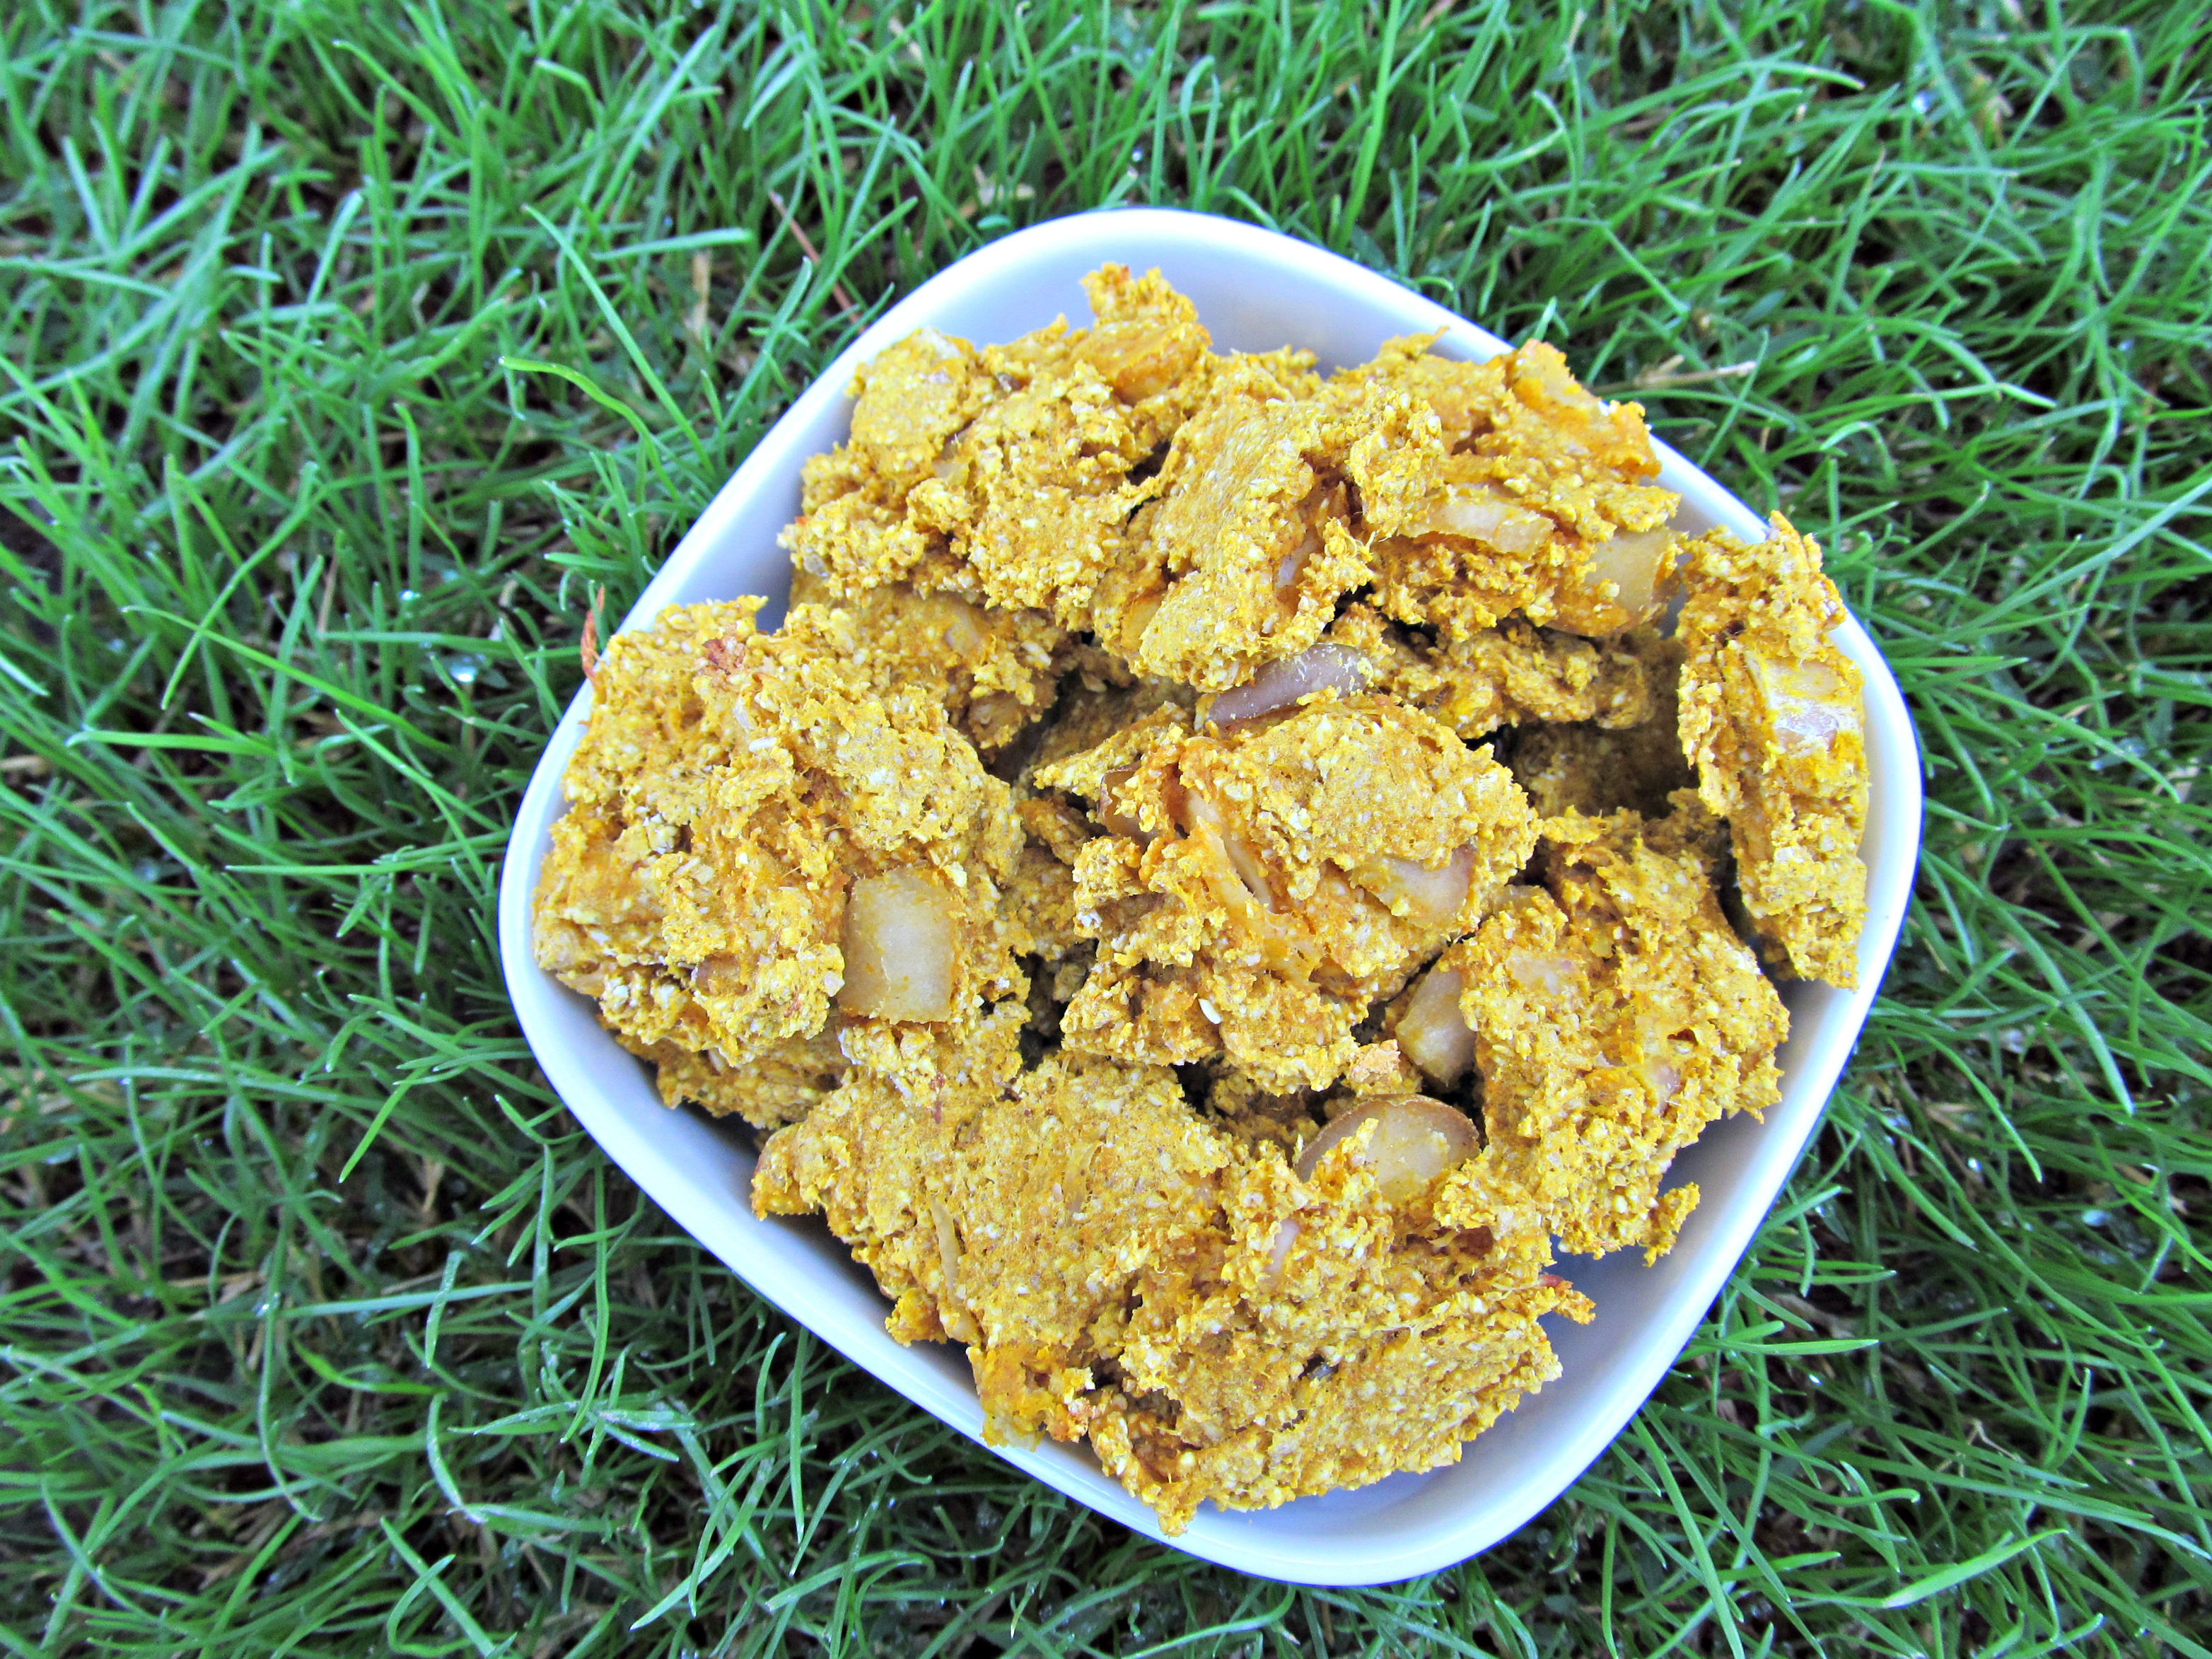 (wheat and dairy-free) pumpkin pear chicken dog treat/biscuit recipe